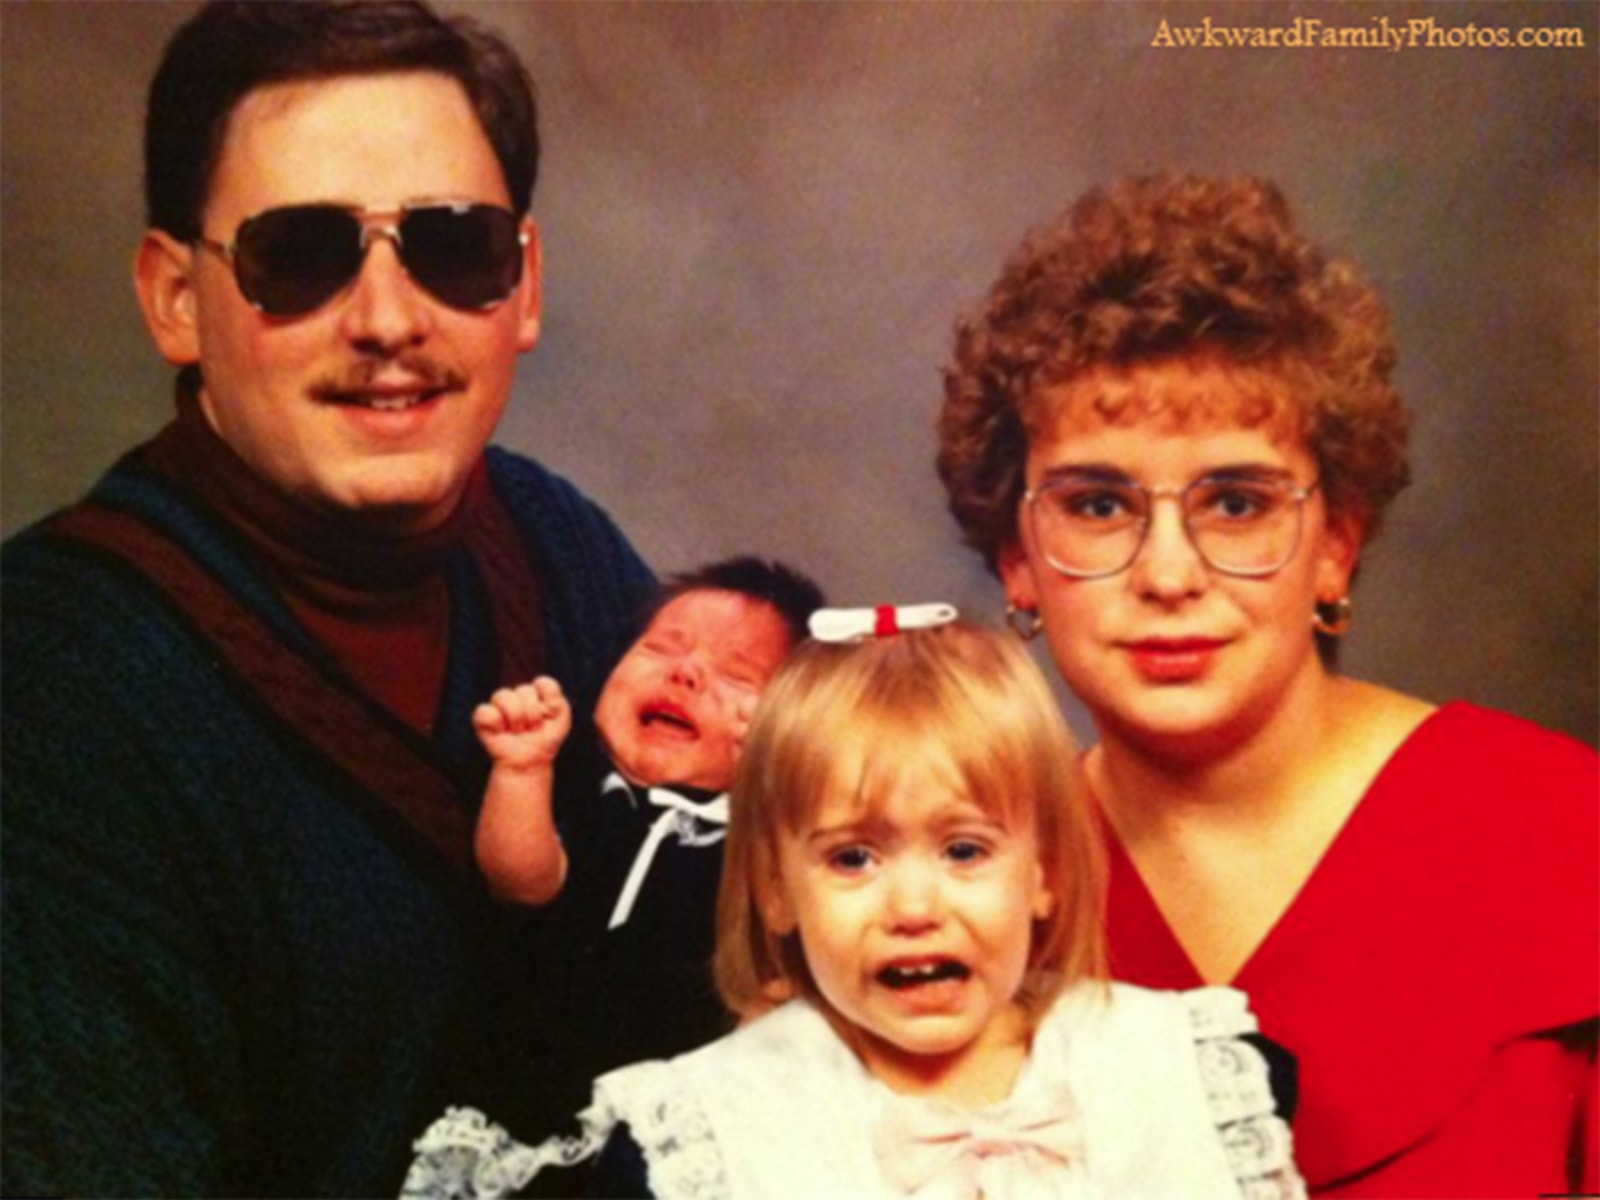 Celebrate Fathers Day with these Awkward Dad photos